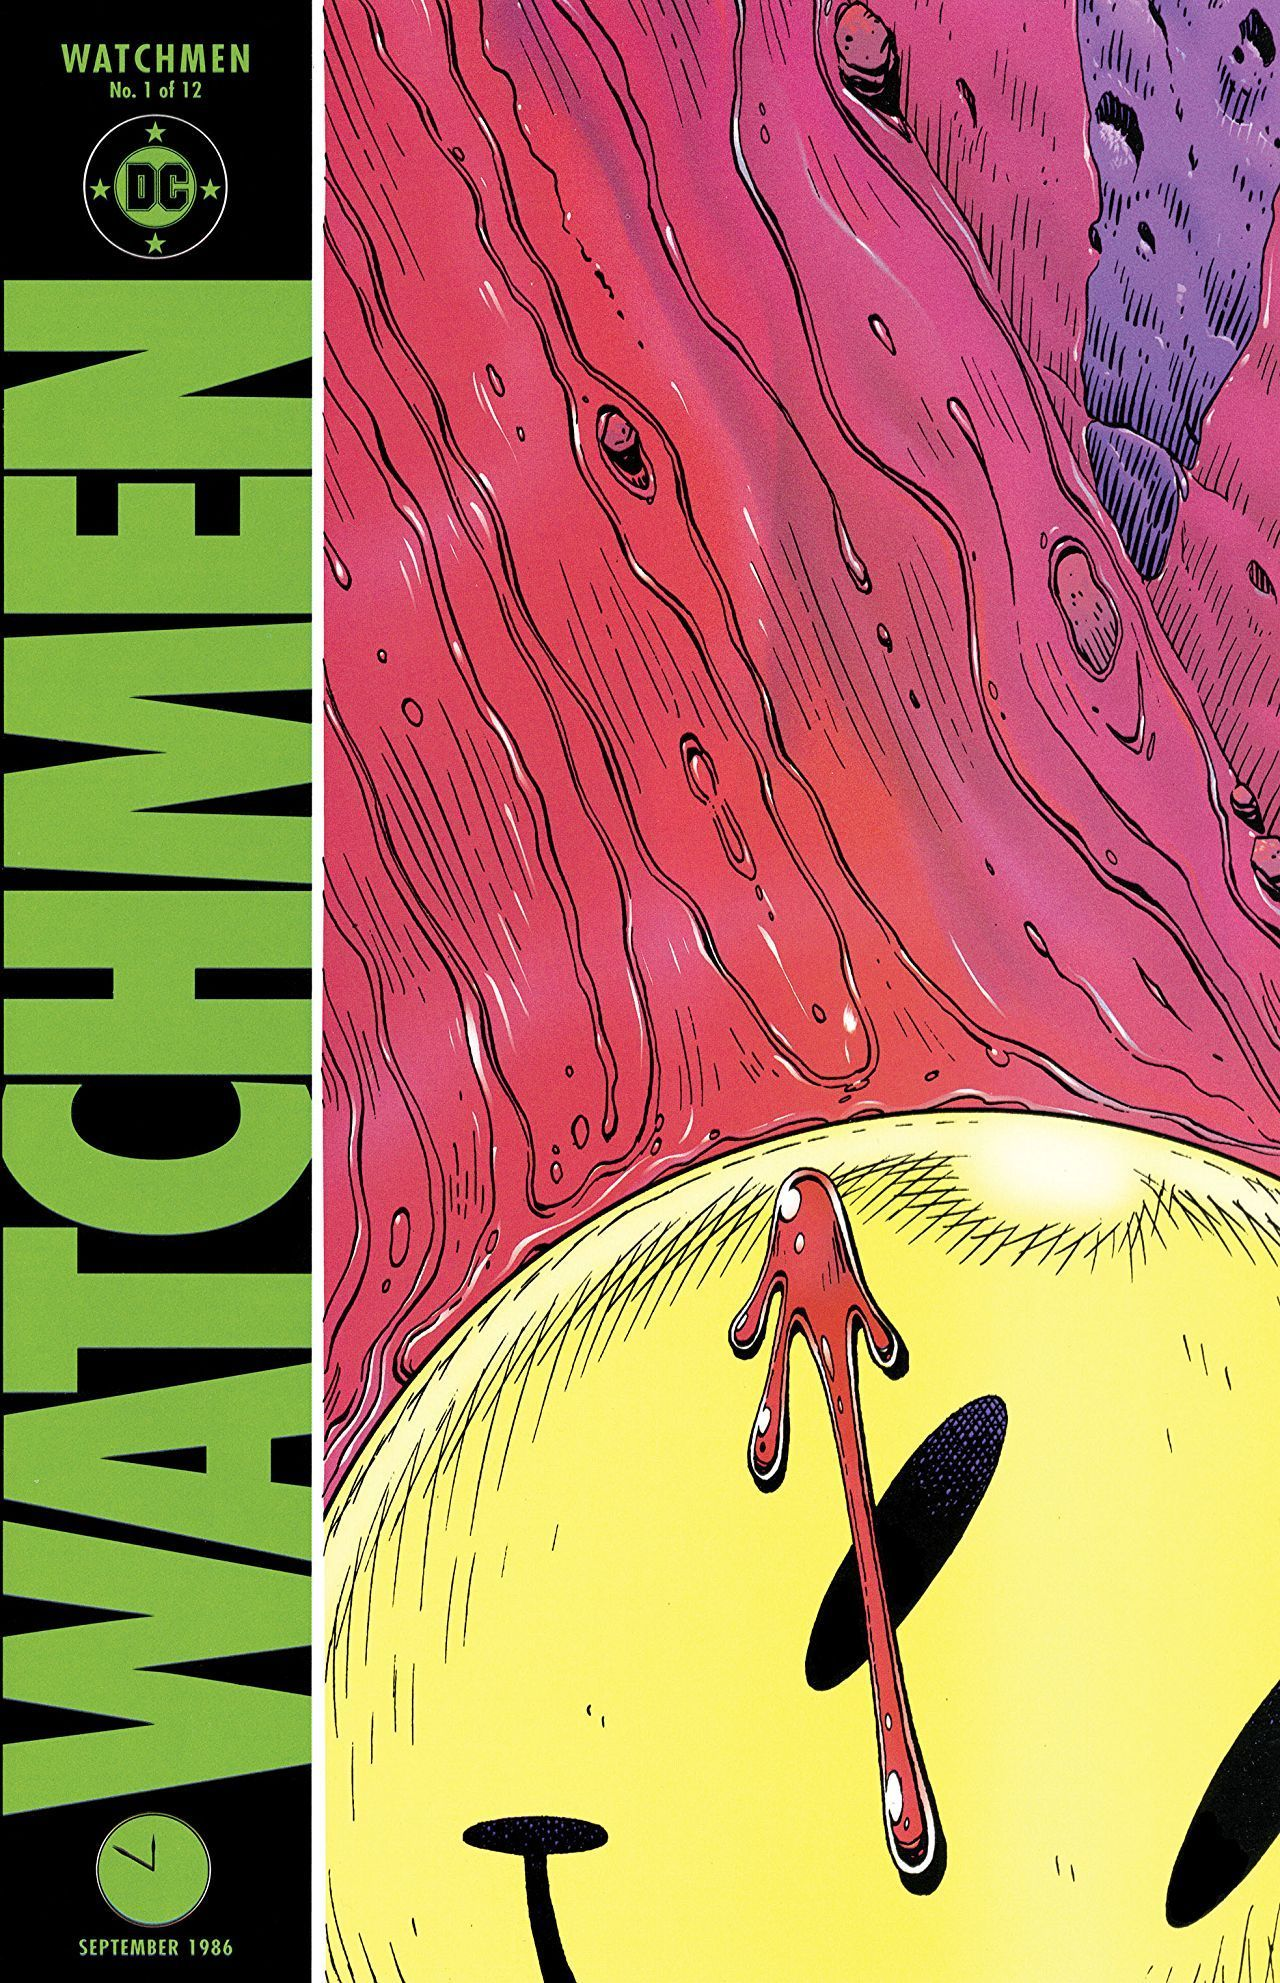 Watchmen #1 - At Midnight, All The Agents... released by DC Comics on September 1, 1986